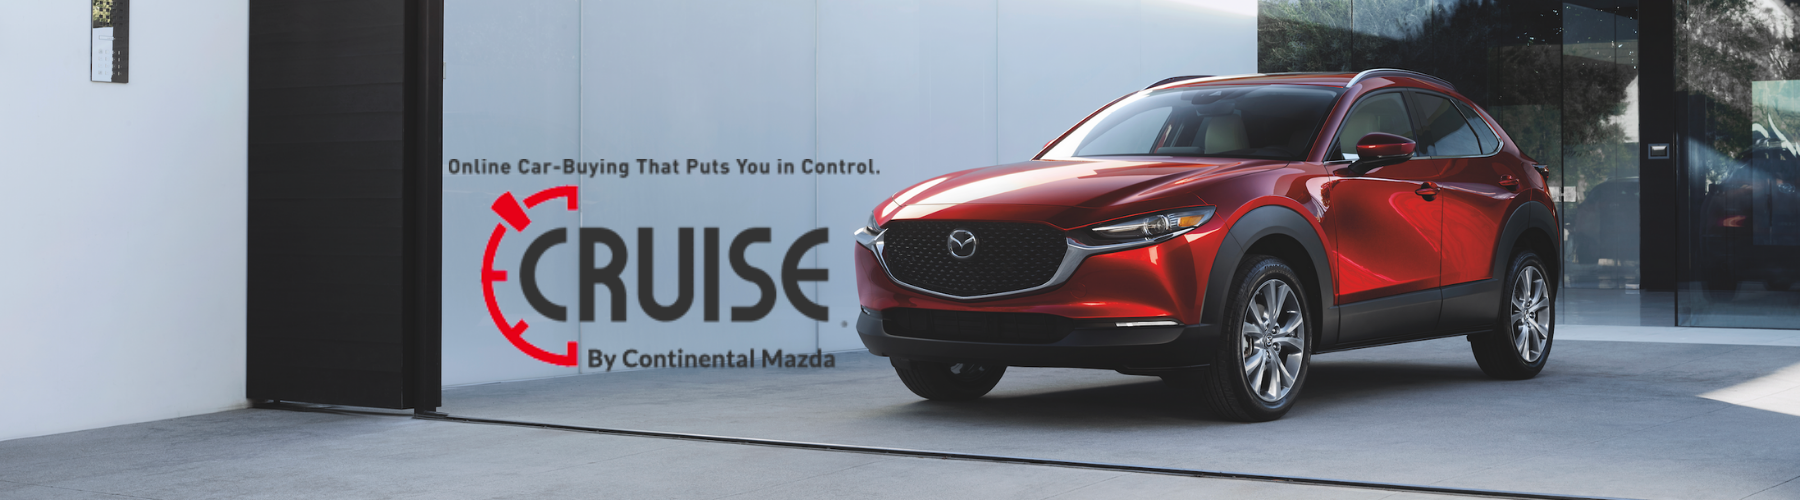 Cruise by Continental Mazda